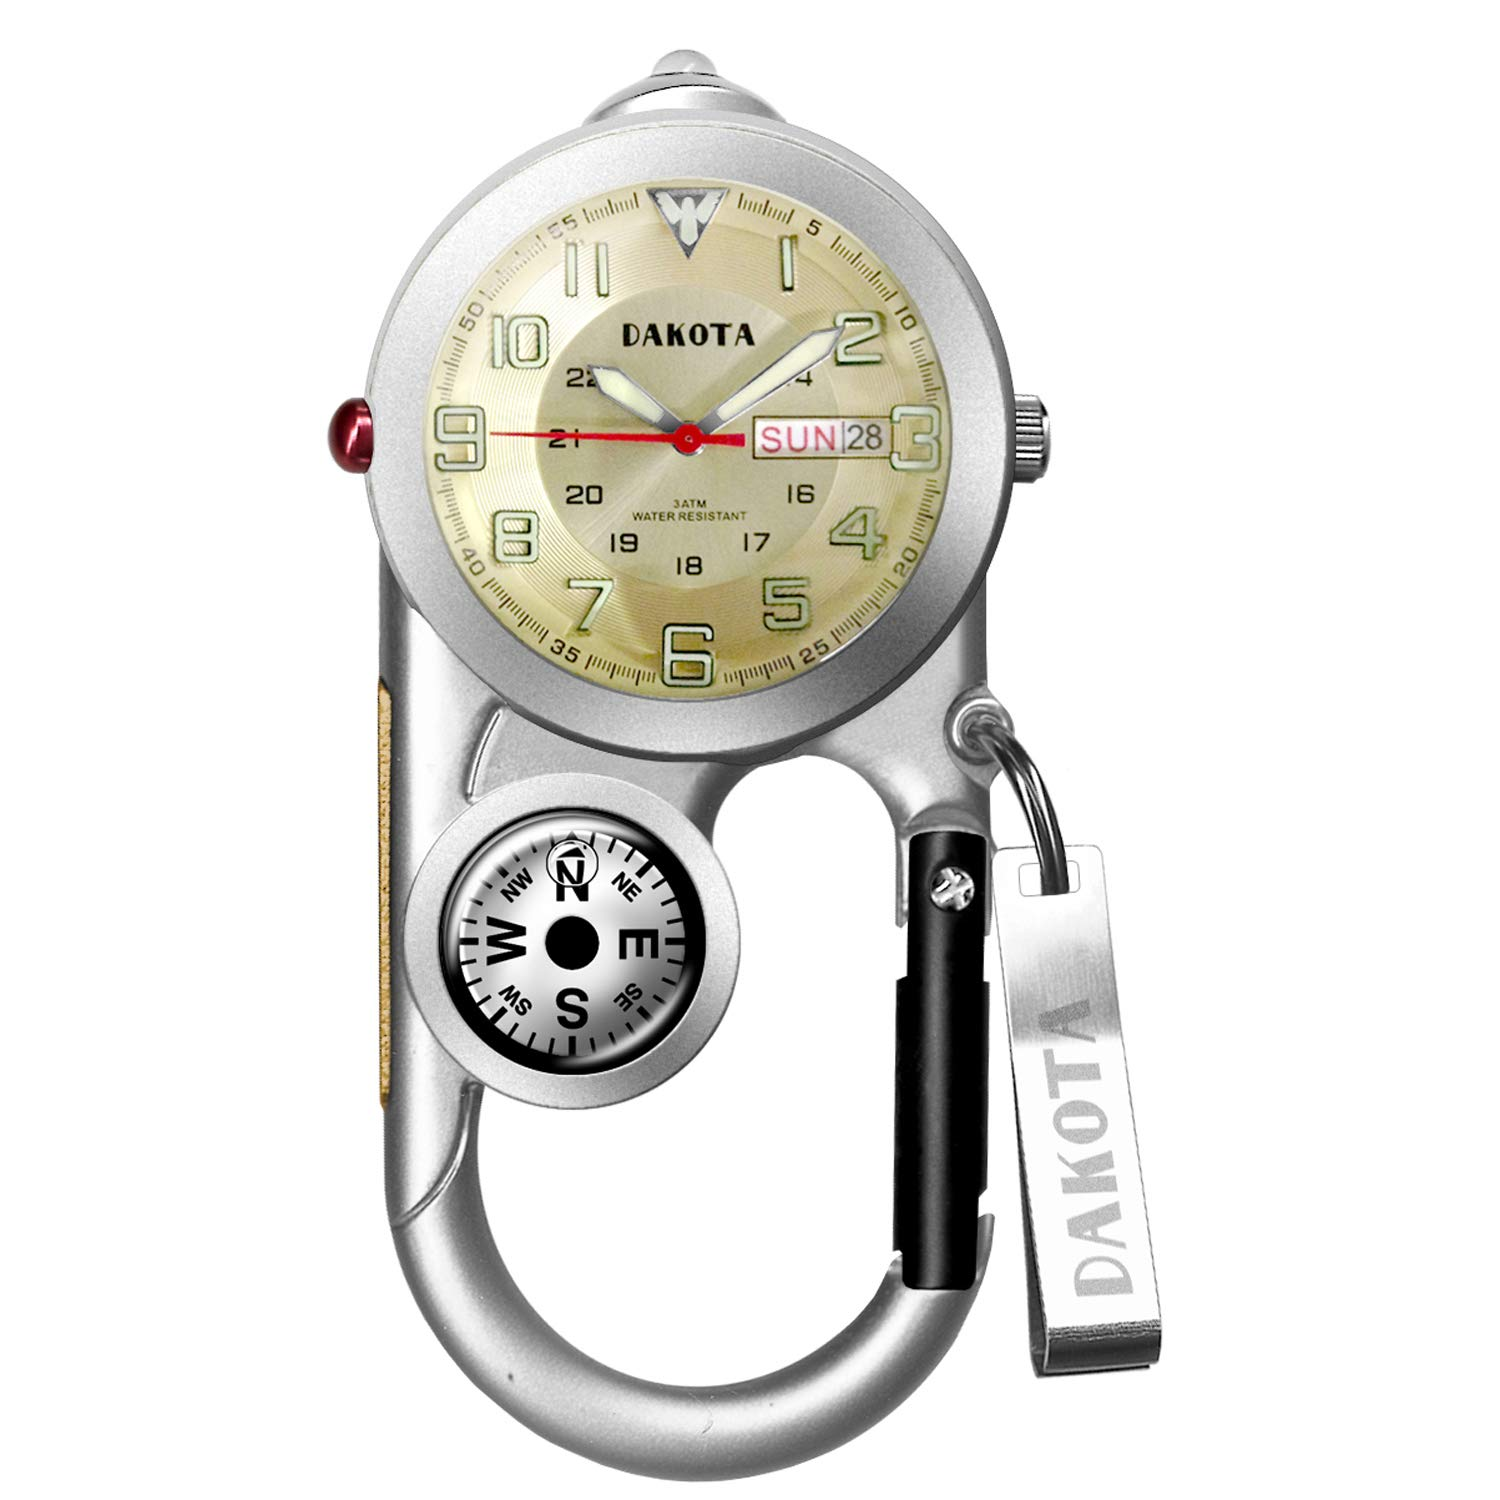 Dakota Angler II Day/Date Clip Watch - Silver/Champagne - Fishing, Camping, Hunting, Sporting Carabiner Clip Water Resistant with Compass and Thermometer (Model: 37492)